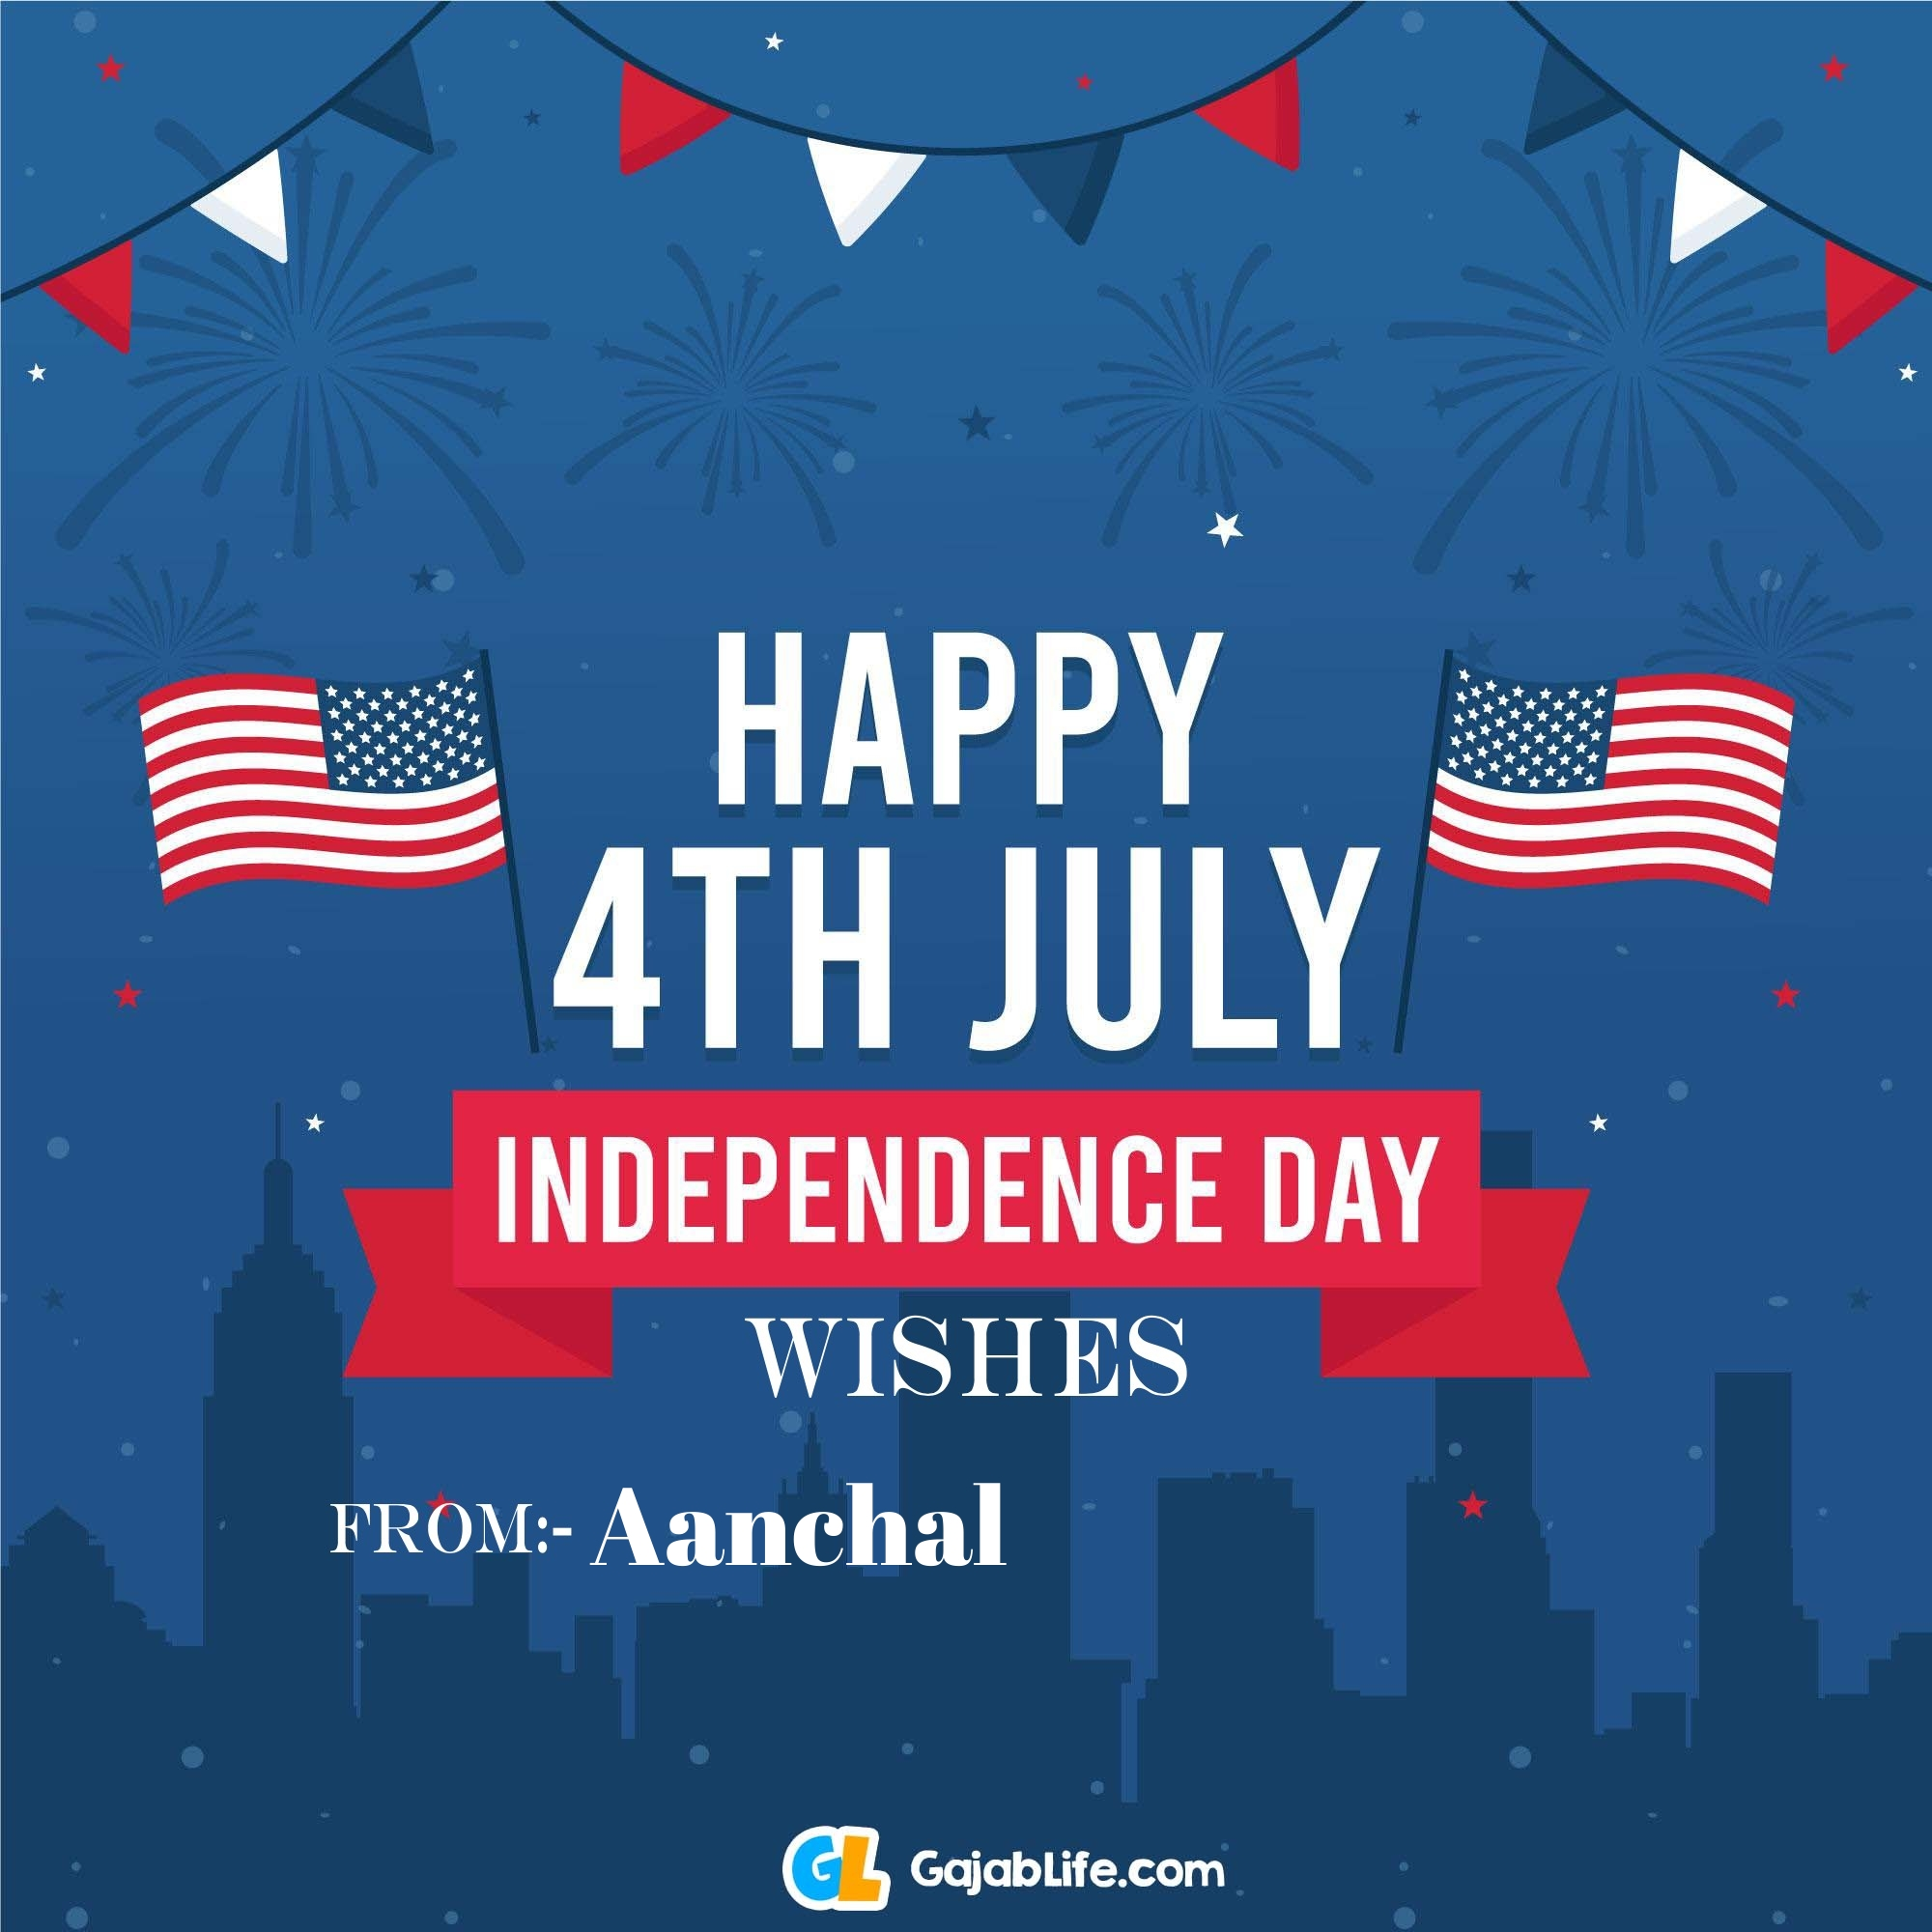 Aanchal happy independence day united states of america images